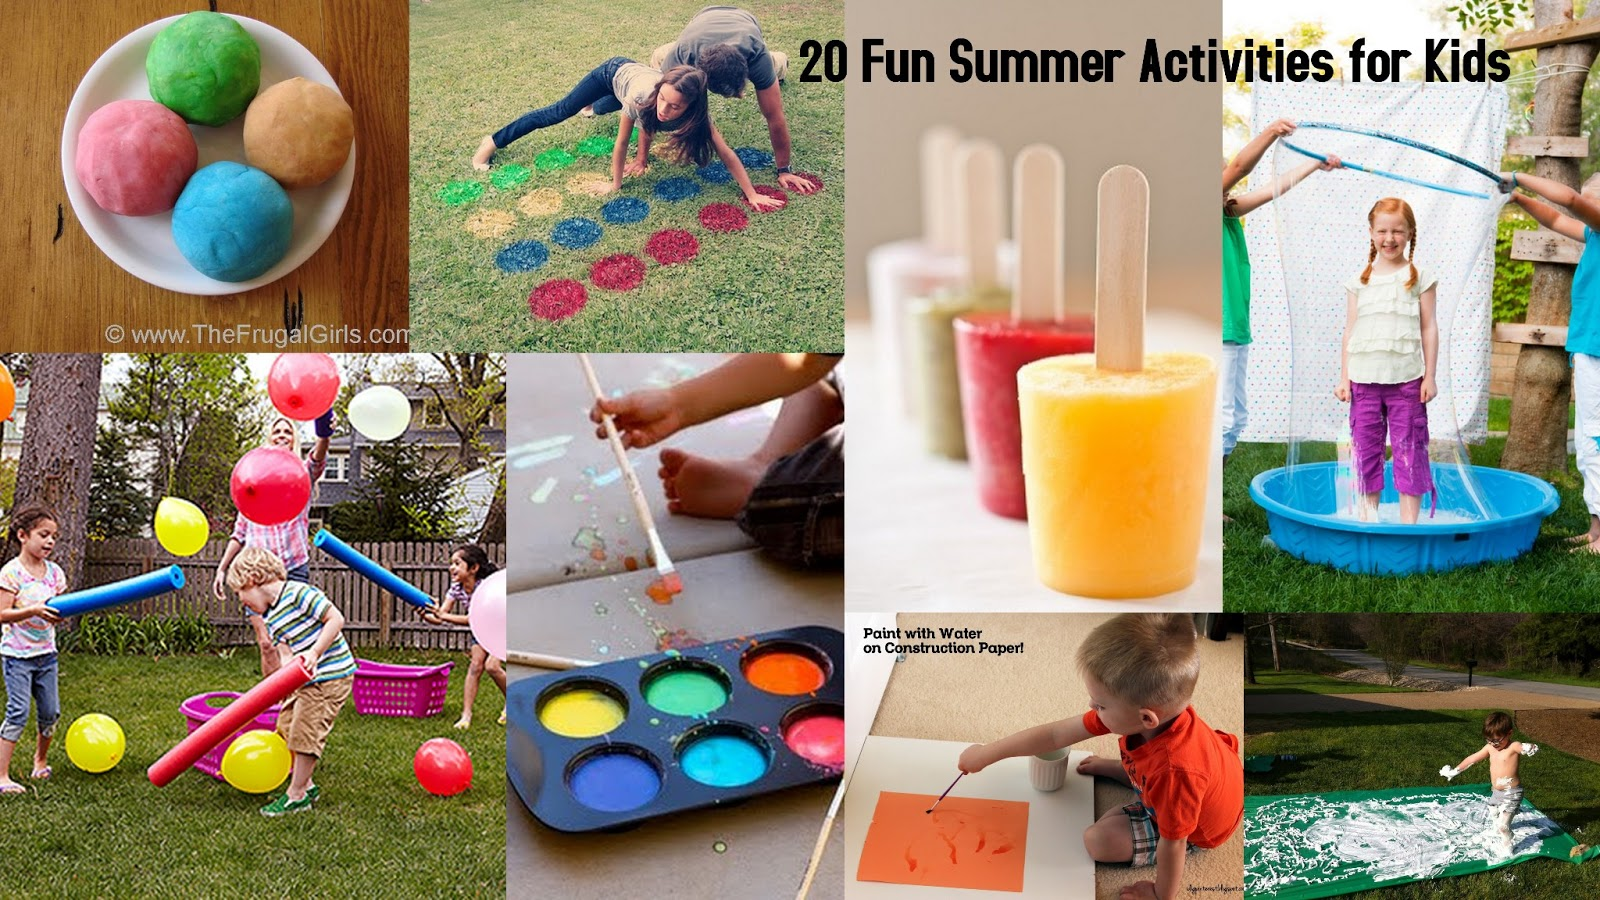 20 fun summer activities for kids